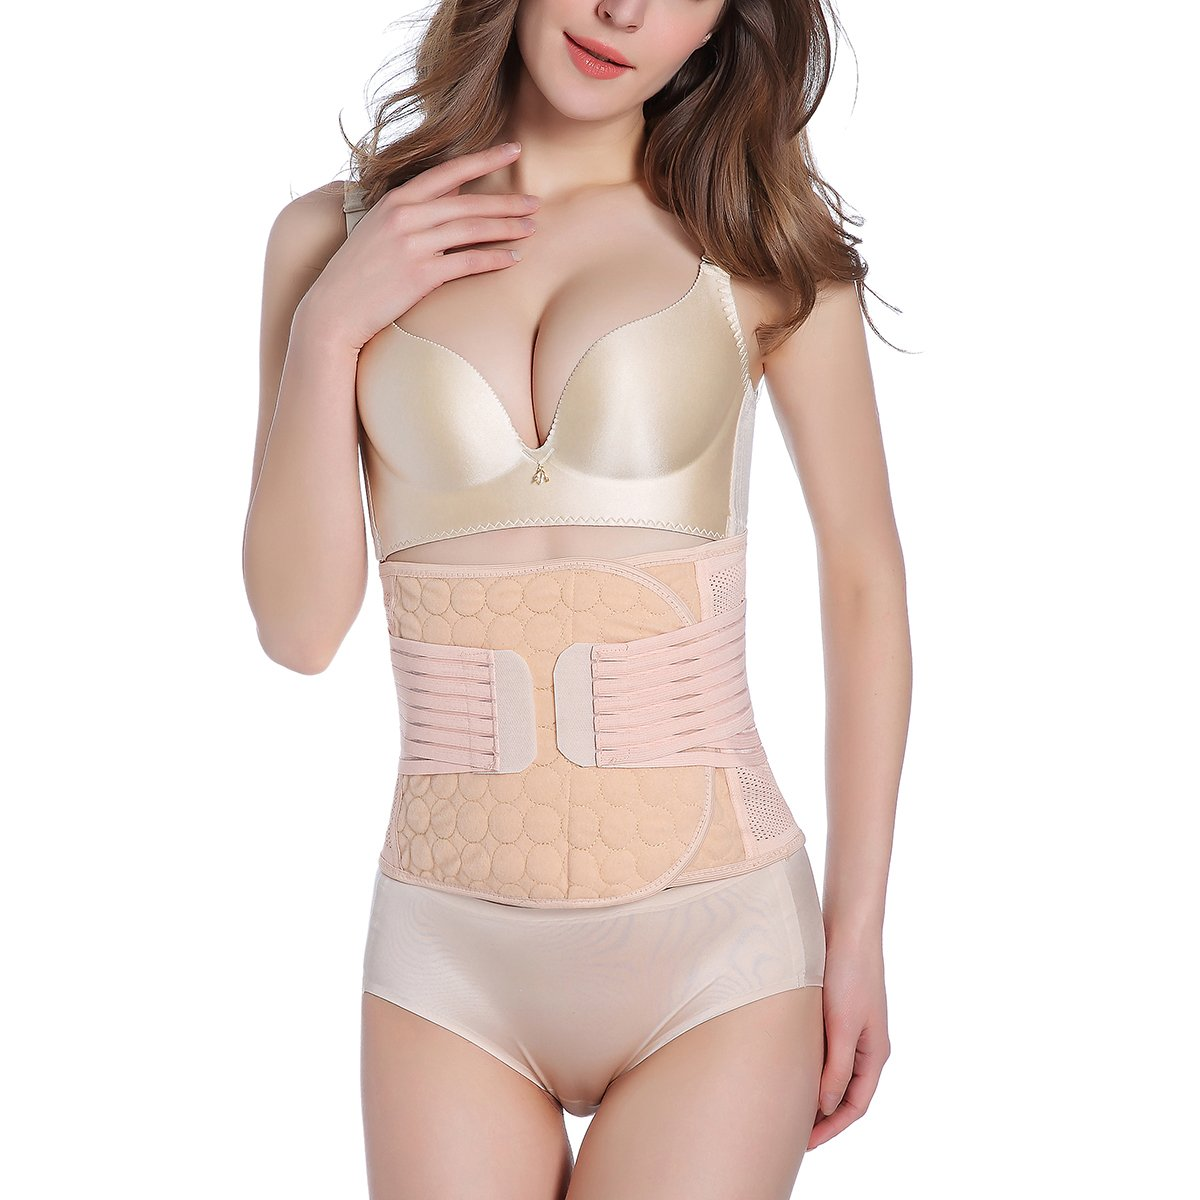 Postpartum Support - Recovery Belly/Waist/Pelvis Belt Shapewear - Post Belly Band Postpartum C Section Recovery Belt Girdle Belly Binder She-Lin